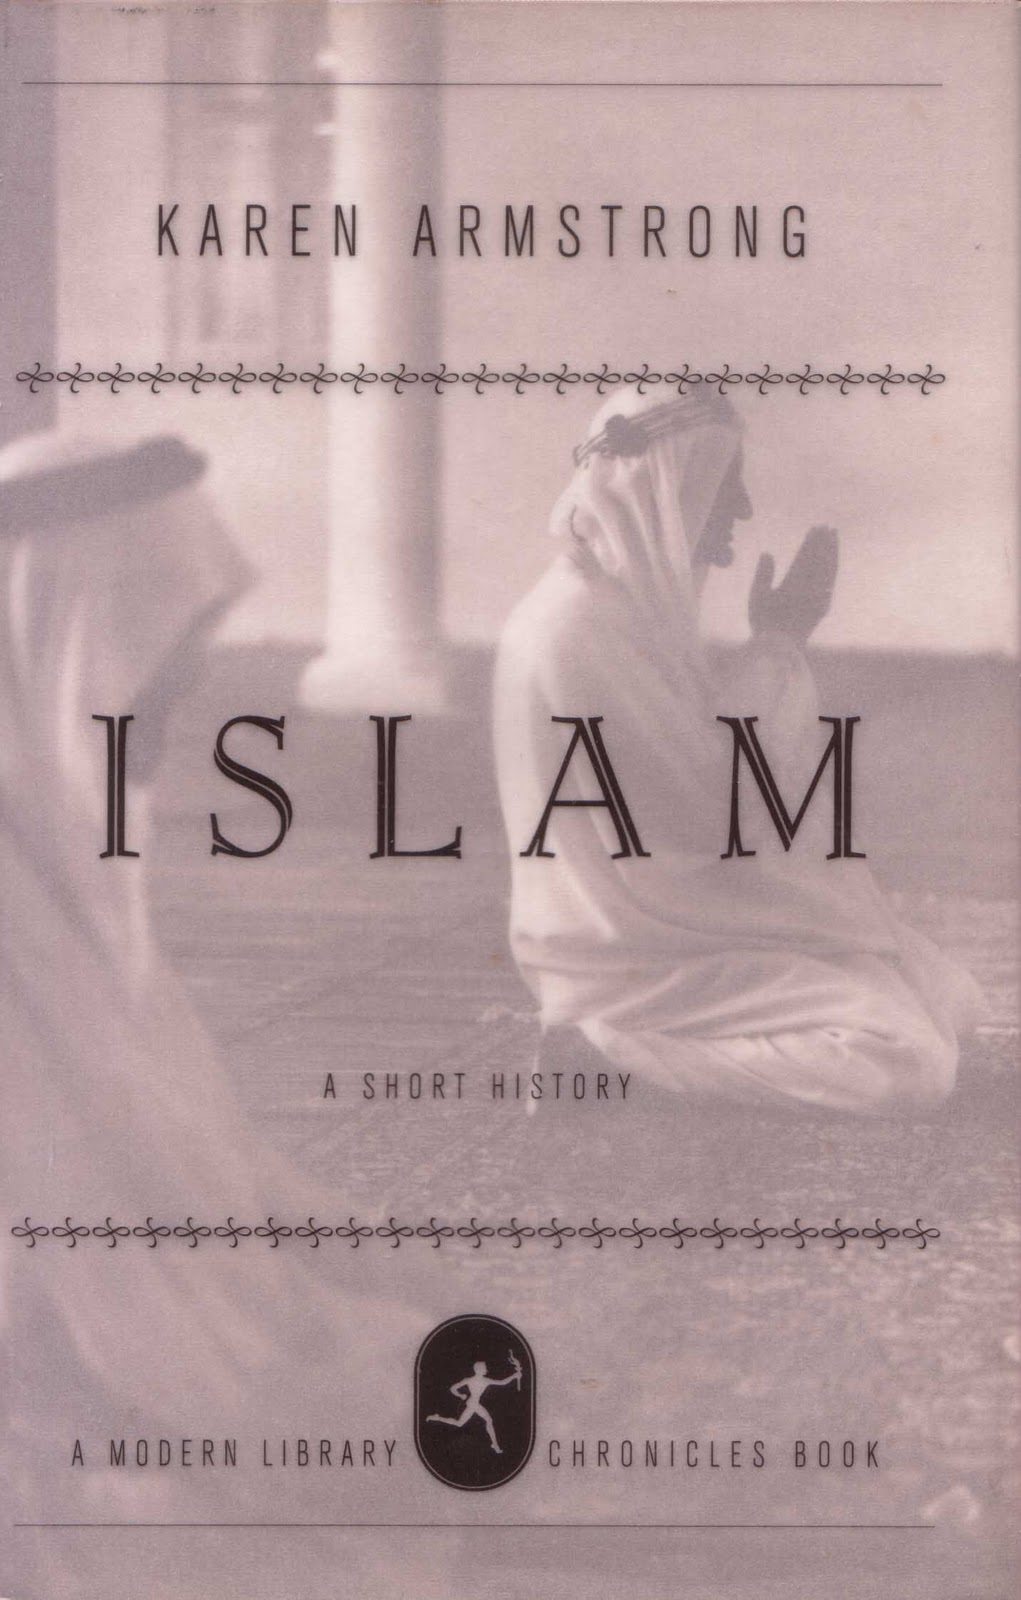 islam a short history No religion in the modern world is as feared and misunderstood as islam it  haunts the popular  islam a short history a short history by karen armstrong .